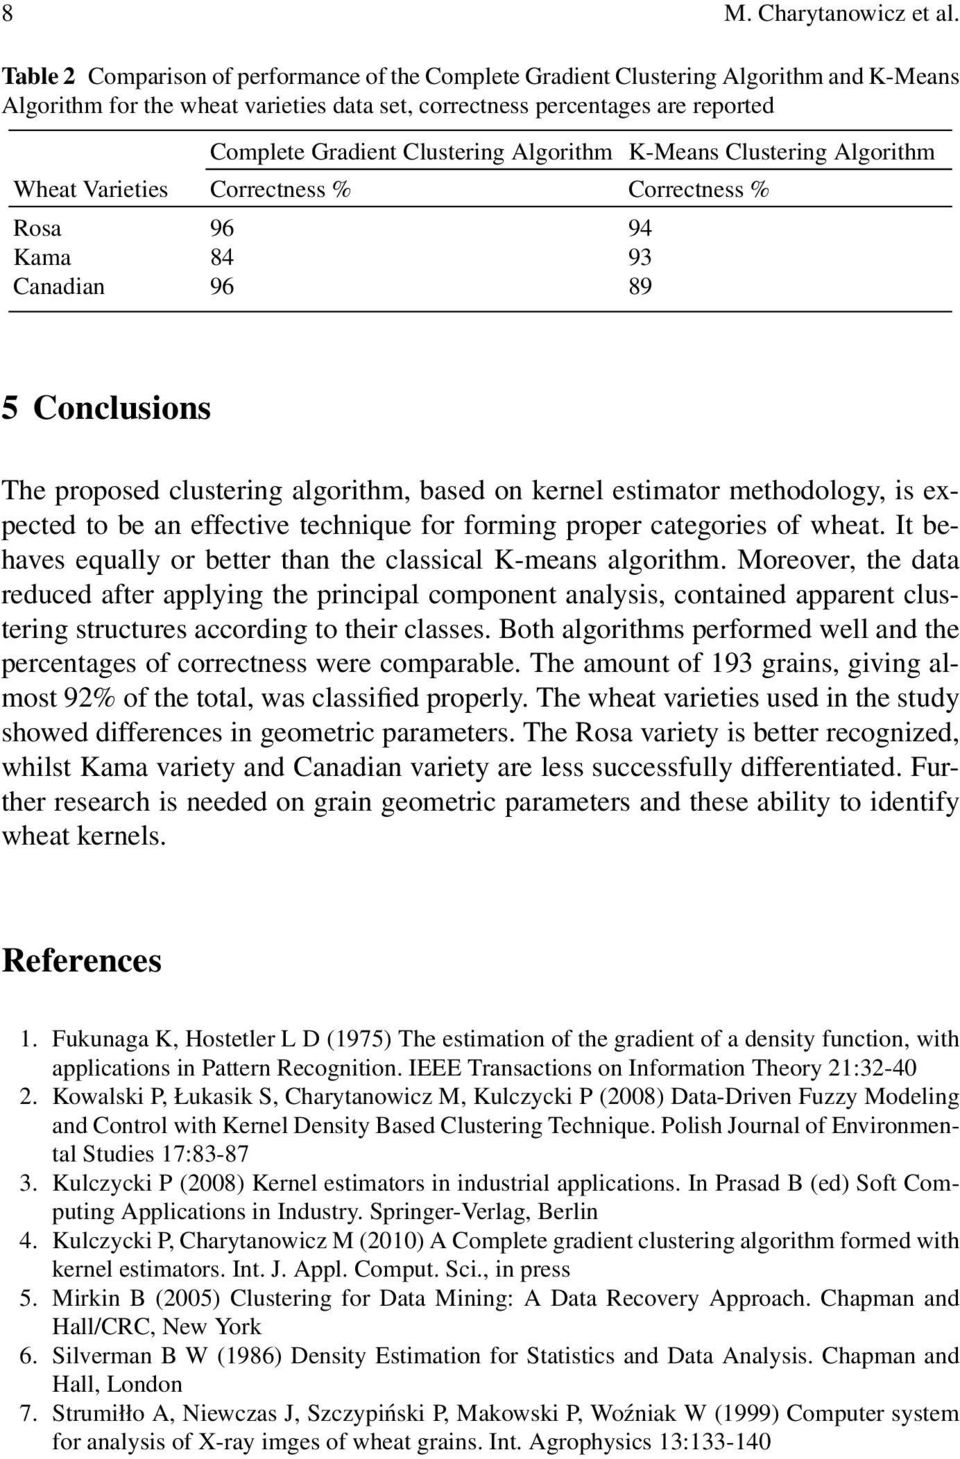 Clustering Algorithm K-Means Clustering Algorithm Wheat Varieties Correctness % Correctness % Rosa 96 94 Kama 84 93 Canadian 96 89 5 Conclusions The proposed clustering algorithm, based on kernel